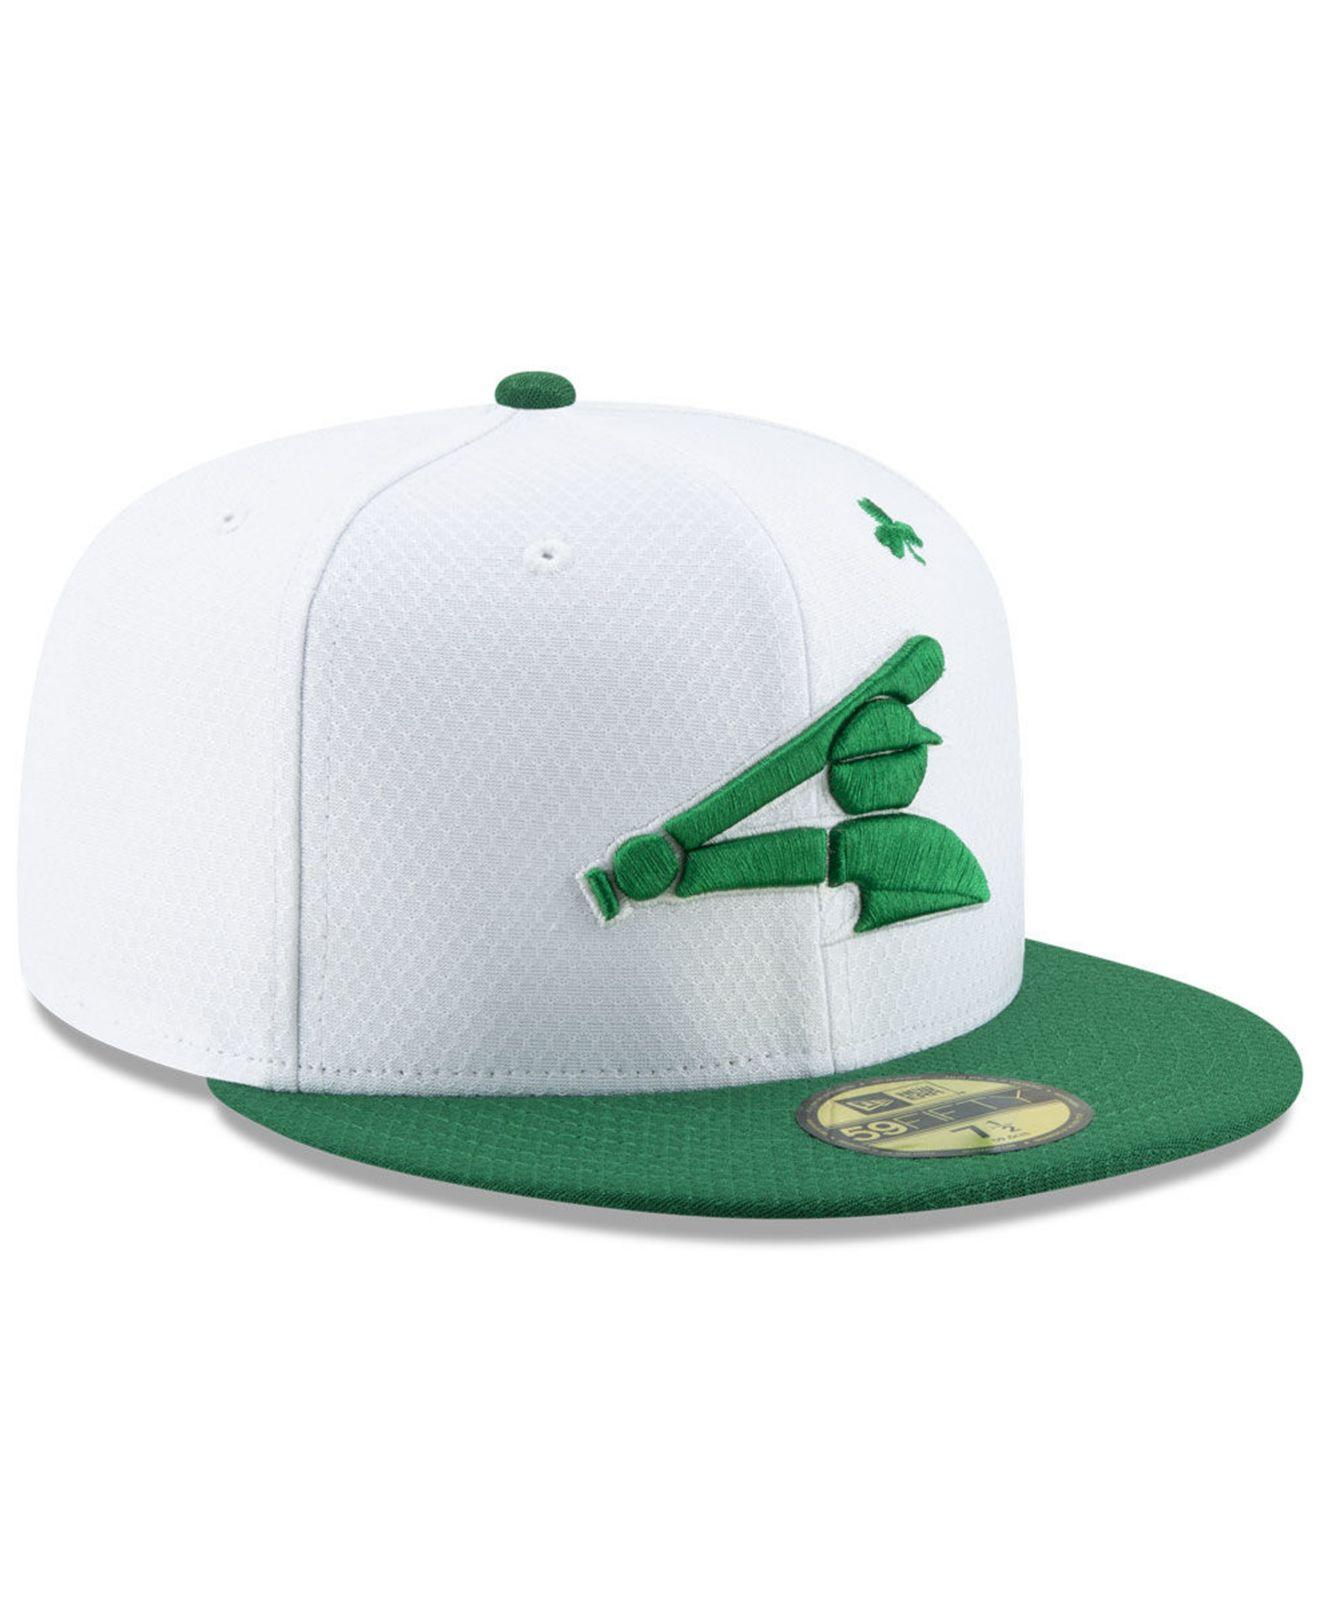 purchase cheap 038a2 0a662 KTZ - Chicago White Sox St. Pattys Day 59fifty-fitted Cap for Men -. View  fullscreen